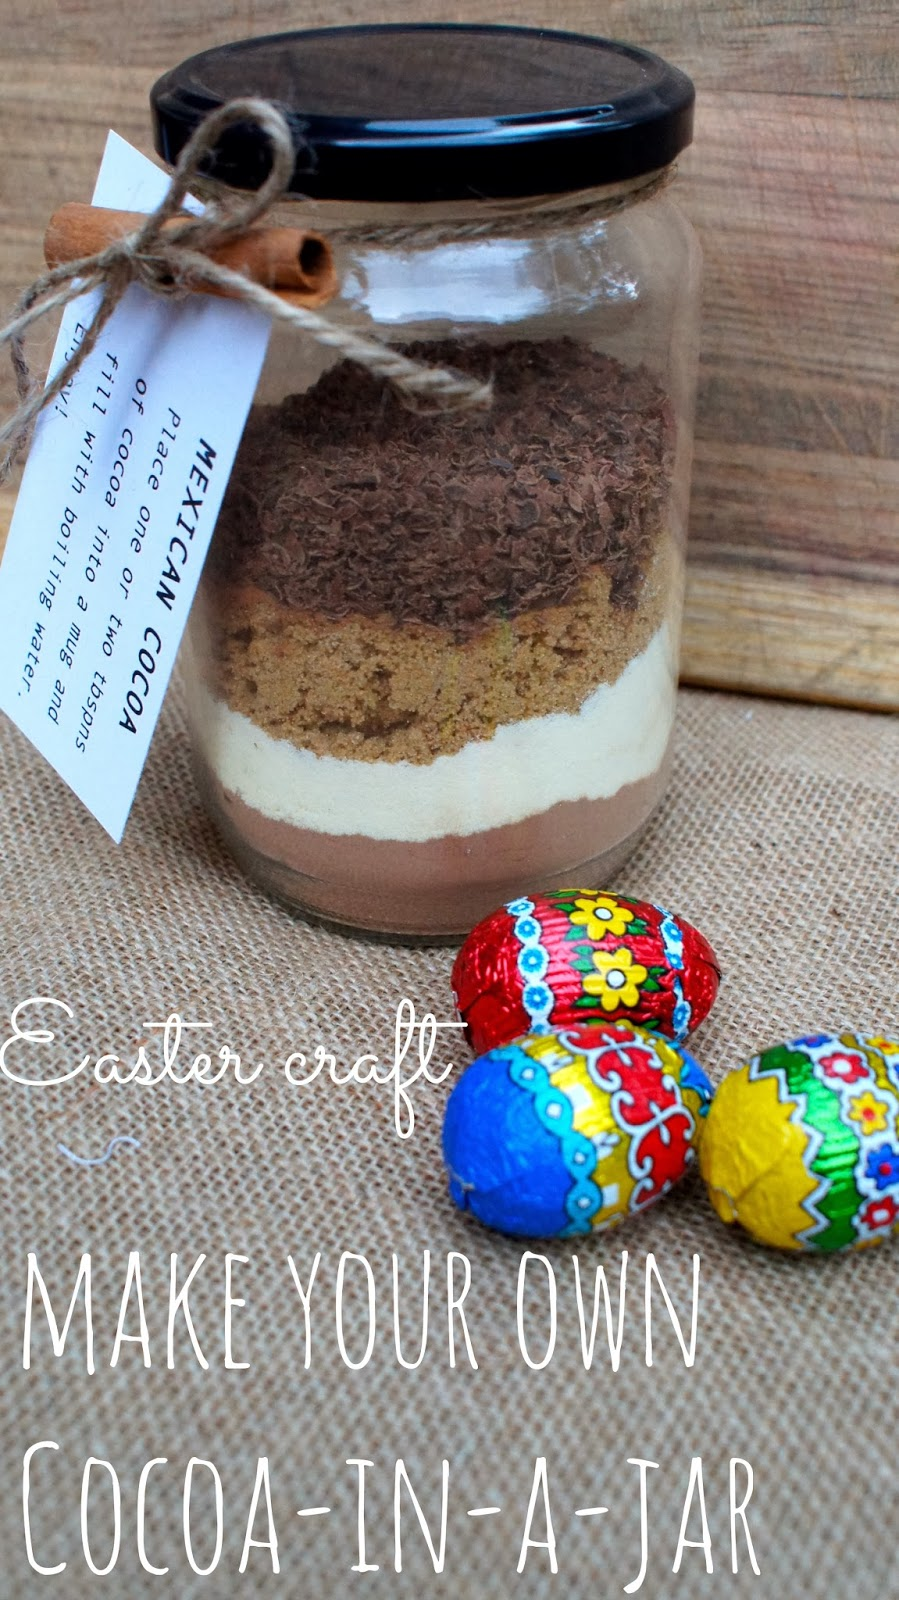 http://froggooseandbear.blogspot.com.au/2014/03/make-your-own-hot-chocolate-this-easter.html